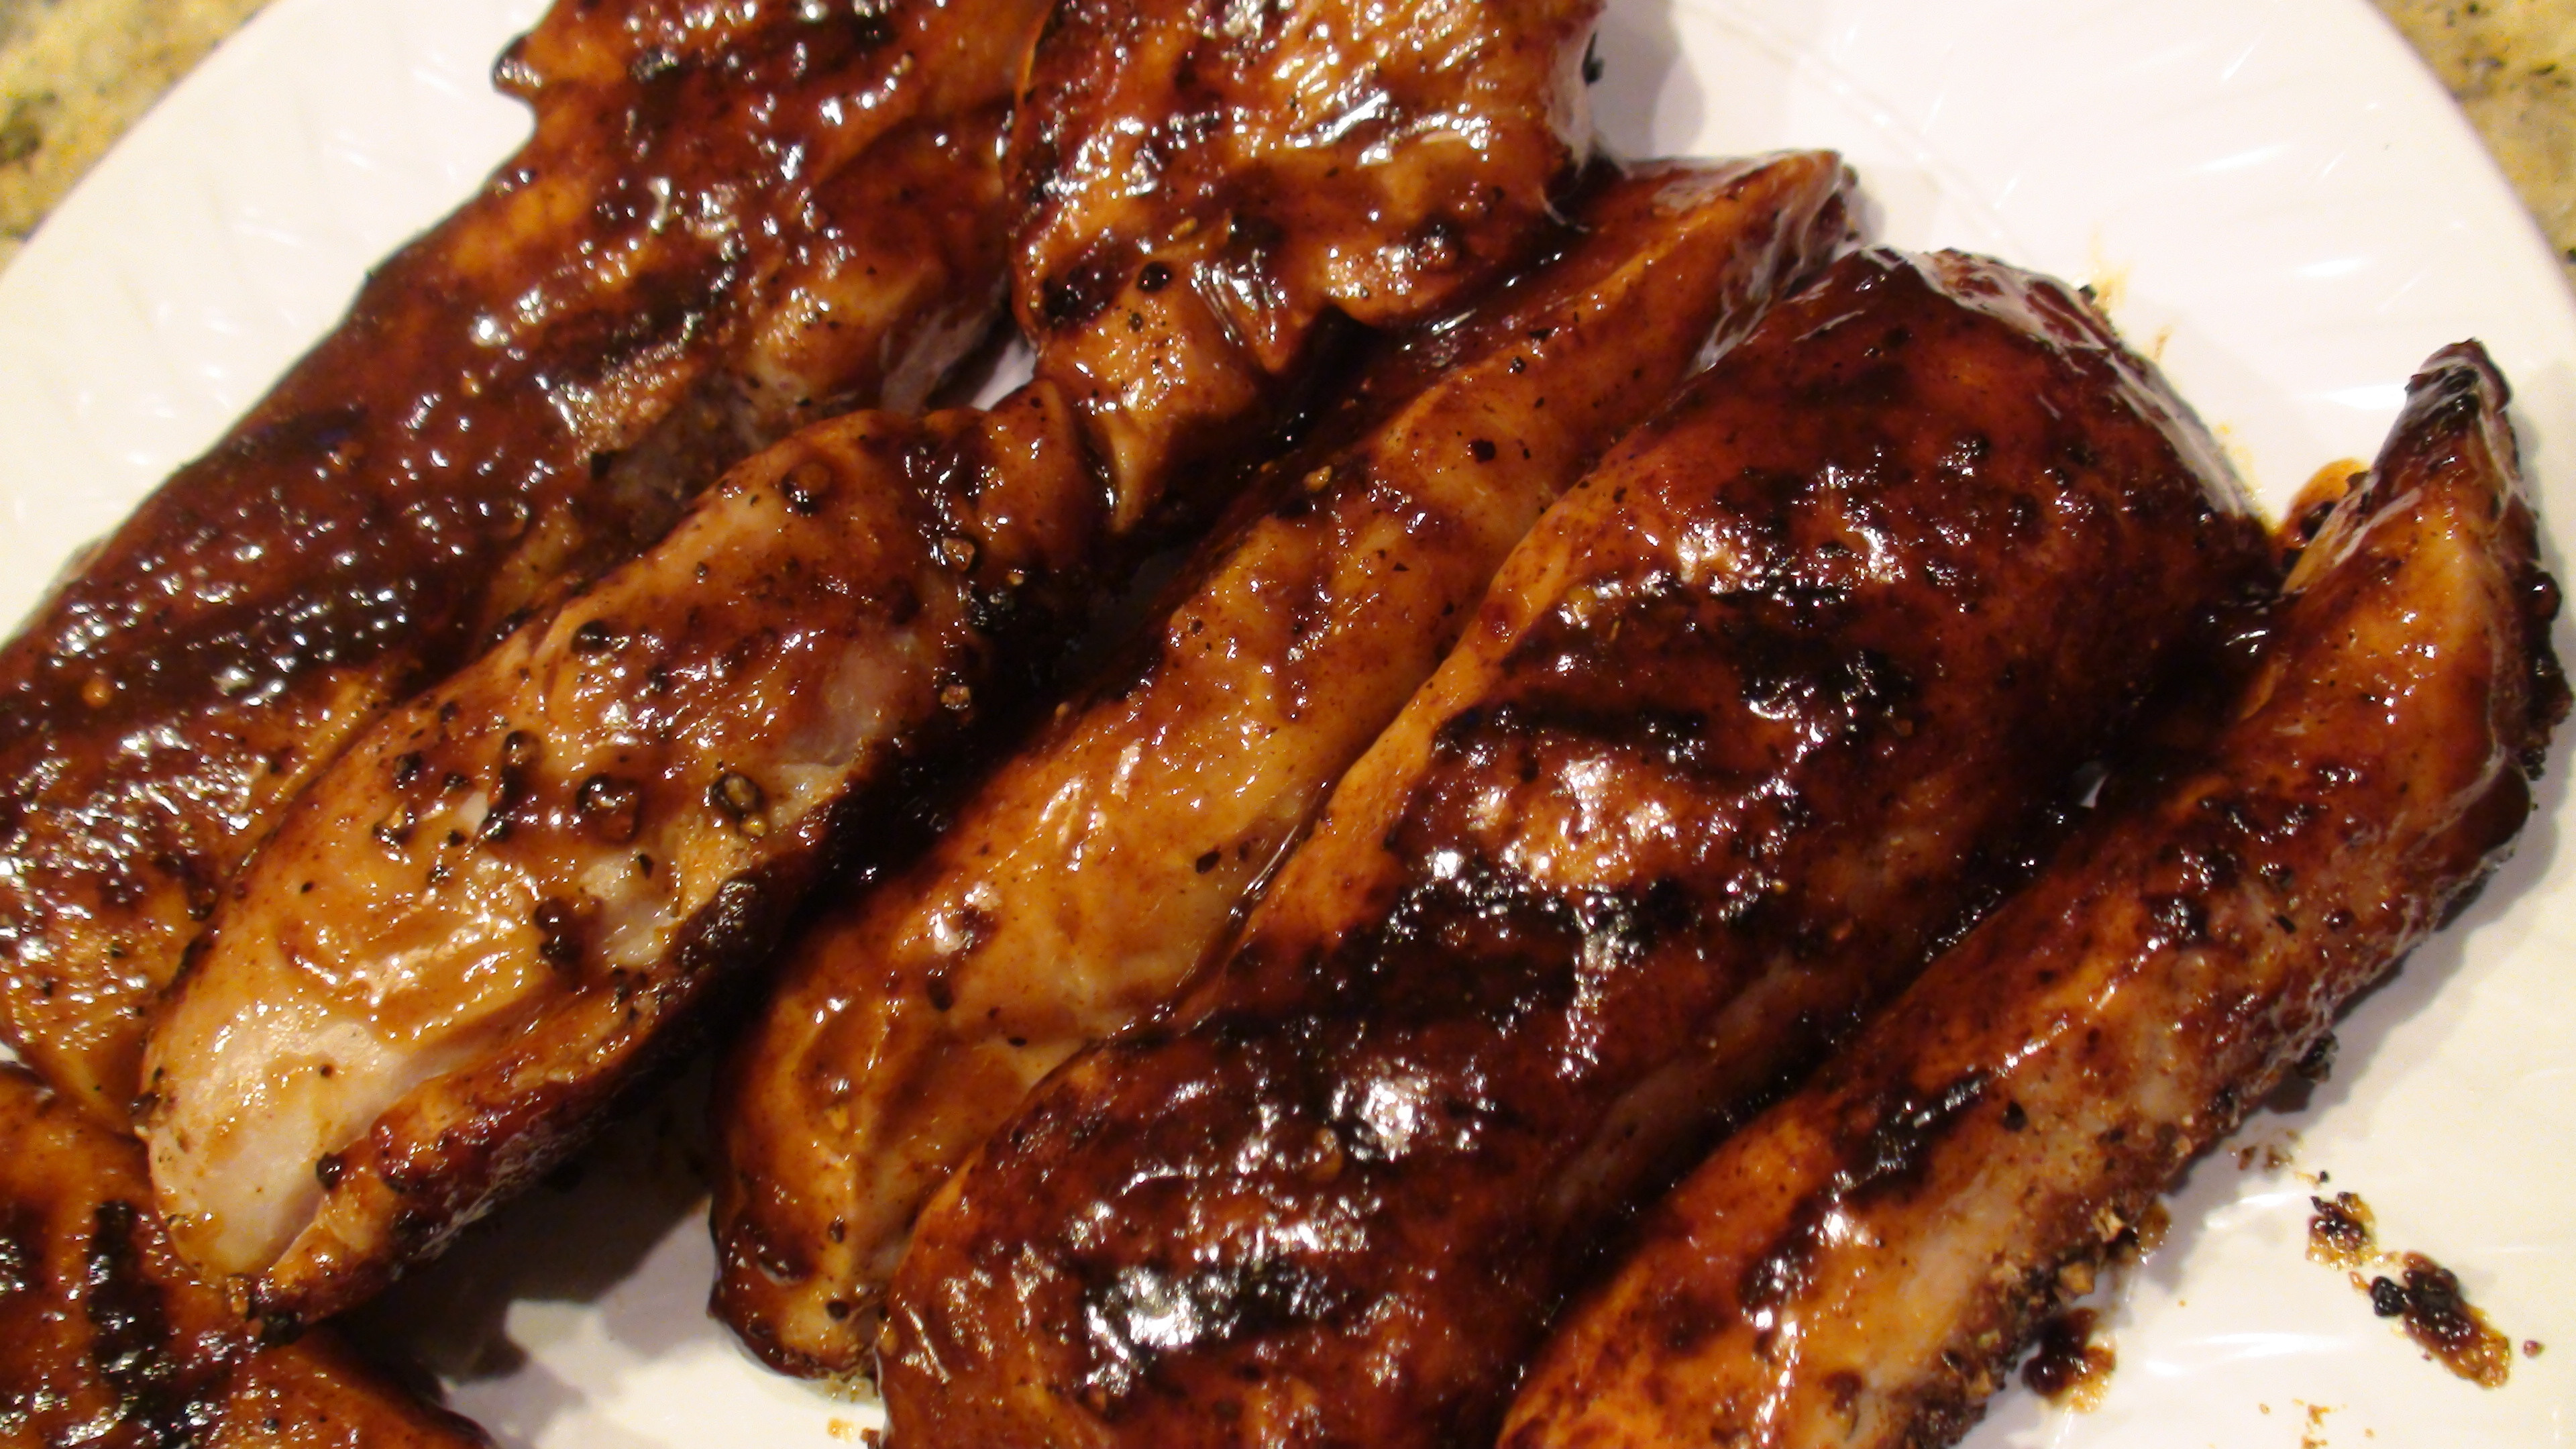 Easy Oven Baked Country Style Pork Ribs Recipe  Oven Baked Country Style Ribs – Everything Country